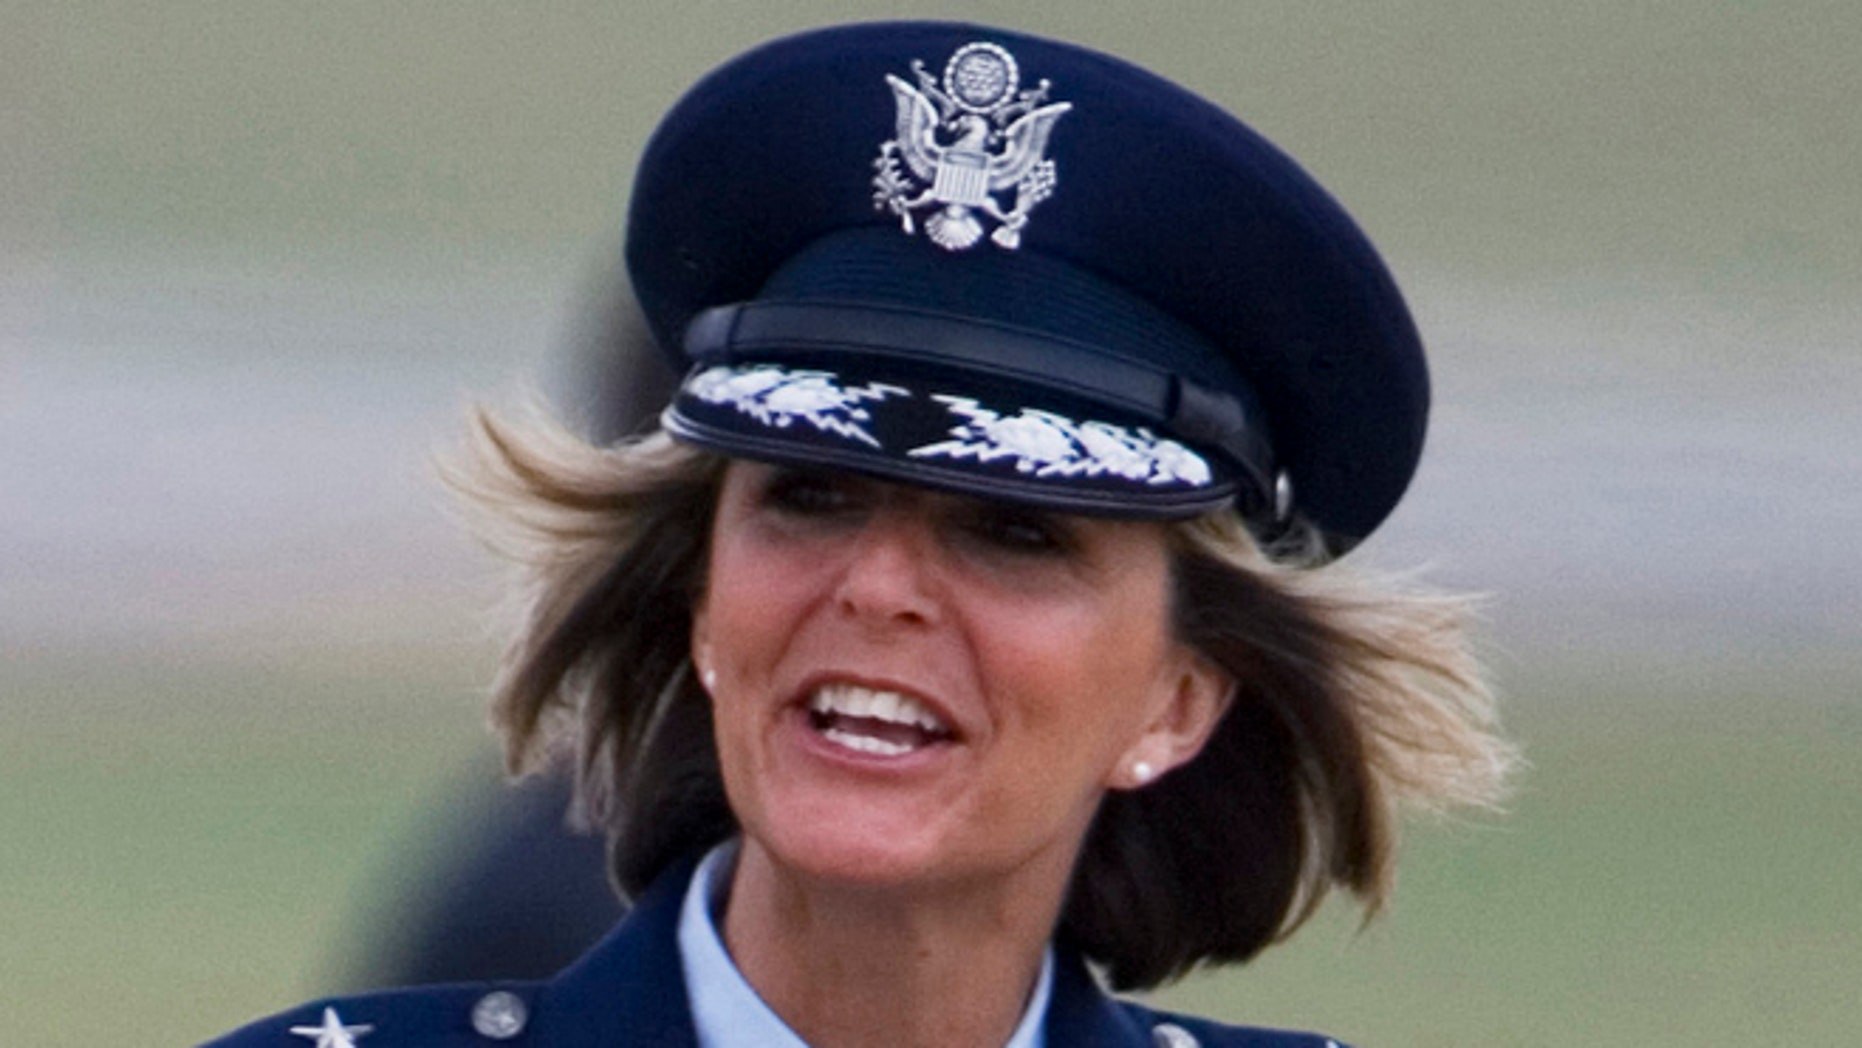 Aug. 4, 2008: In this file photo, Brig. Gen. Margaret Woodward, the 389th Airlift Wing Commander, waves on the tarmac of Andrews Air Force Base in Maryland.